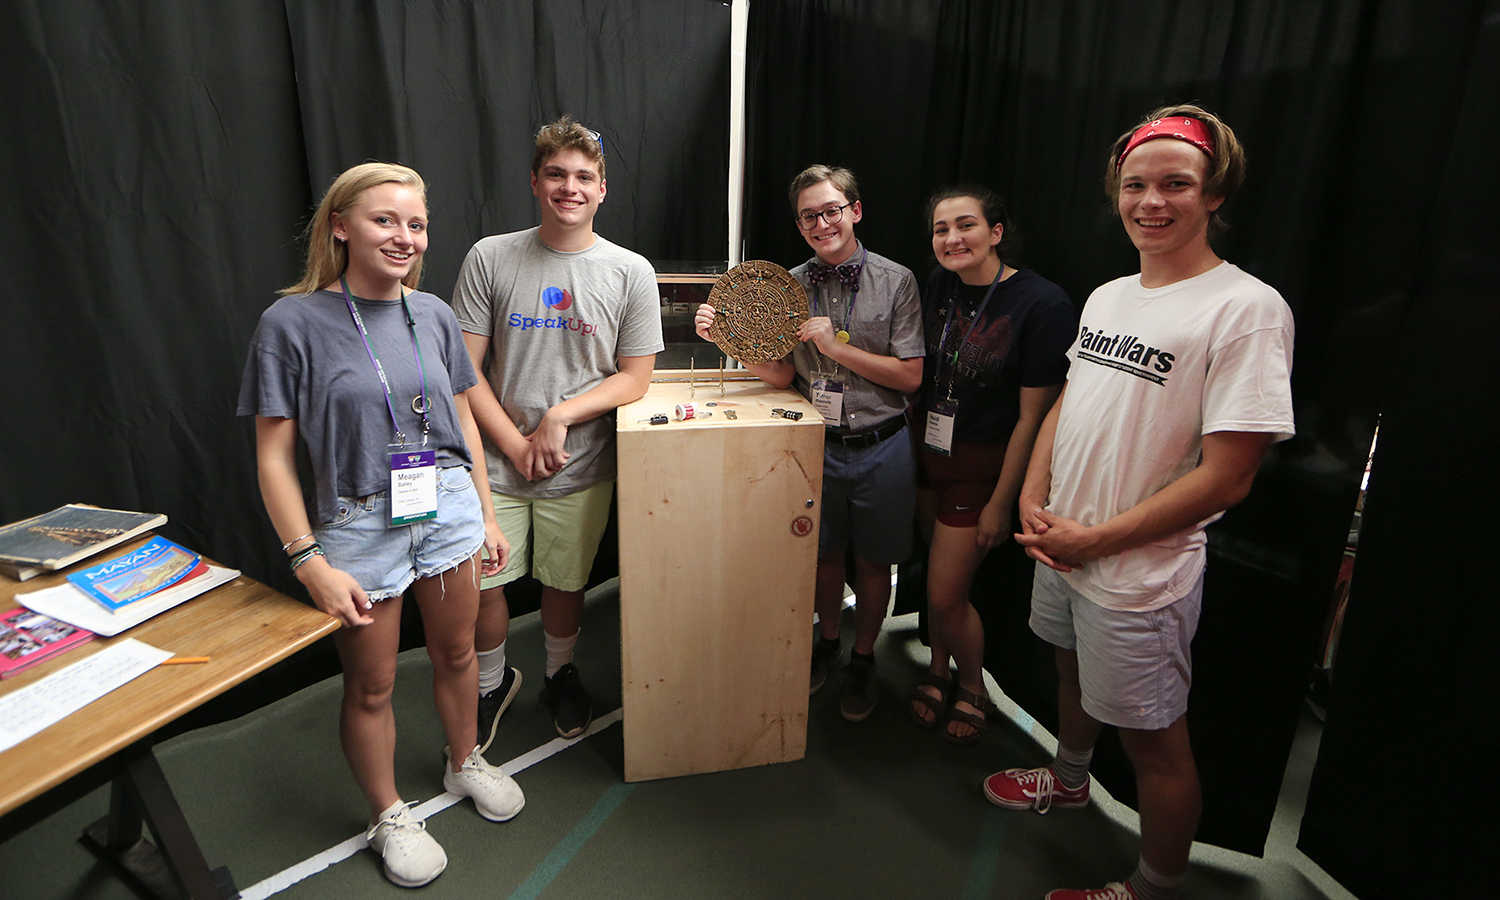 Meagan Bailey '22, Jack Amsterdam '22, Tanner Bissonette '22, Heidi Aversa '22 and Kain Dart-Snouffer '22 celebrate successfully breaking out of an escape room during Orientation Weekend's teambuilding session at Bristol Feild House.